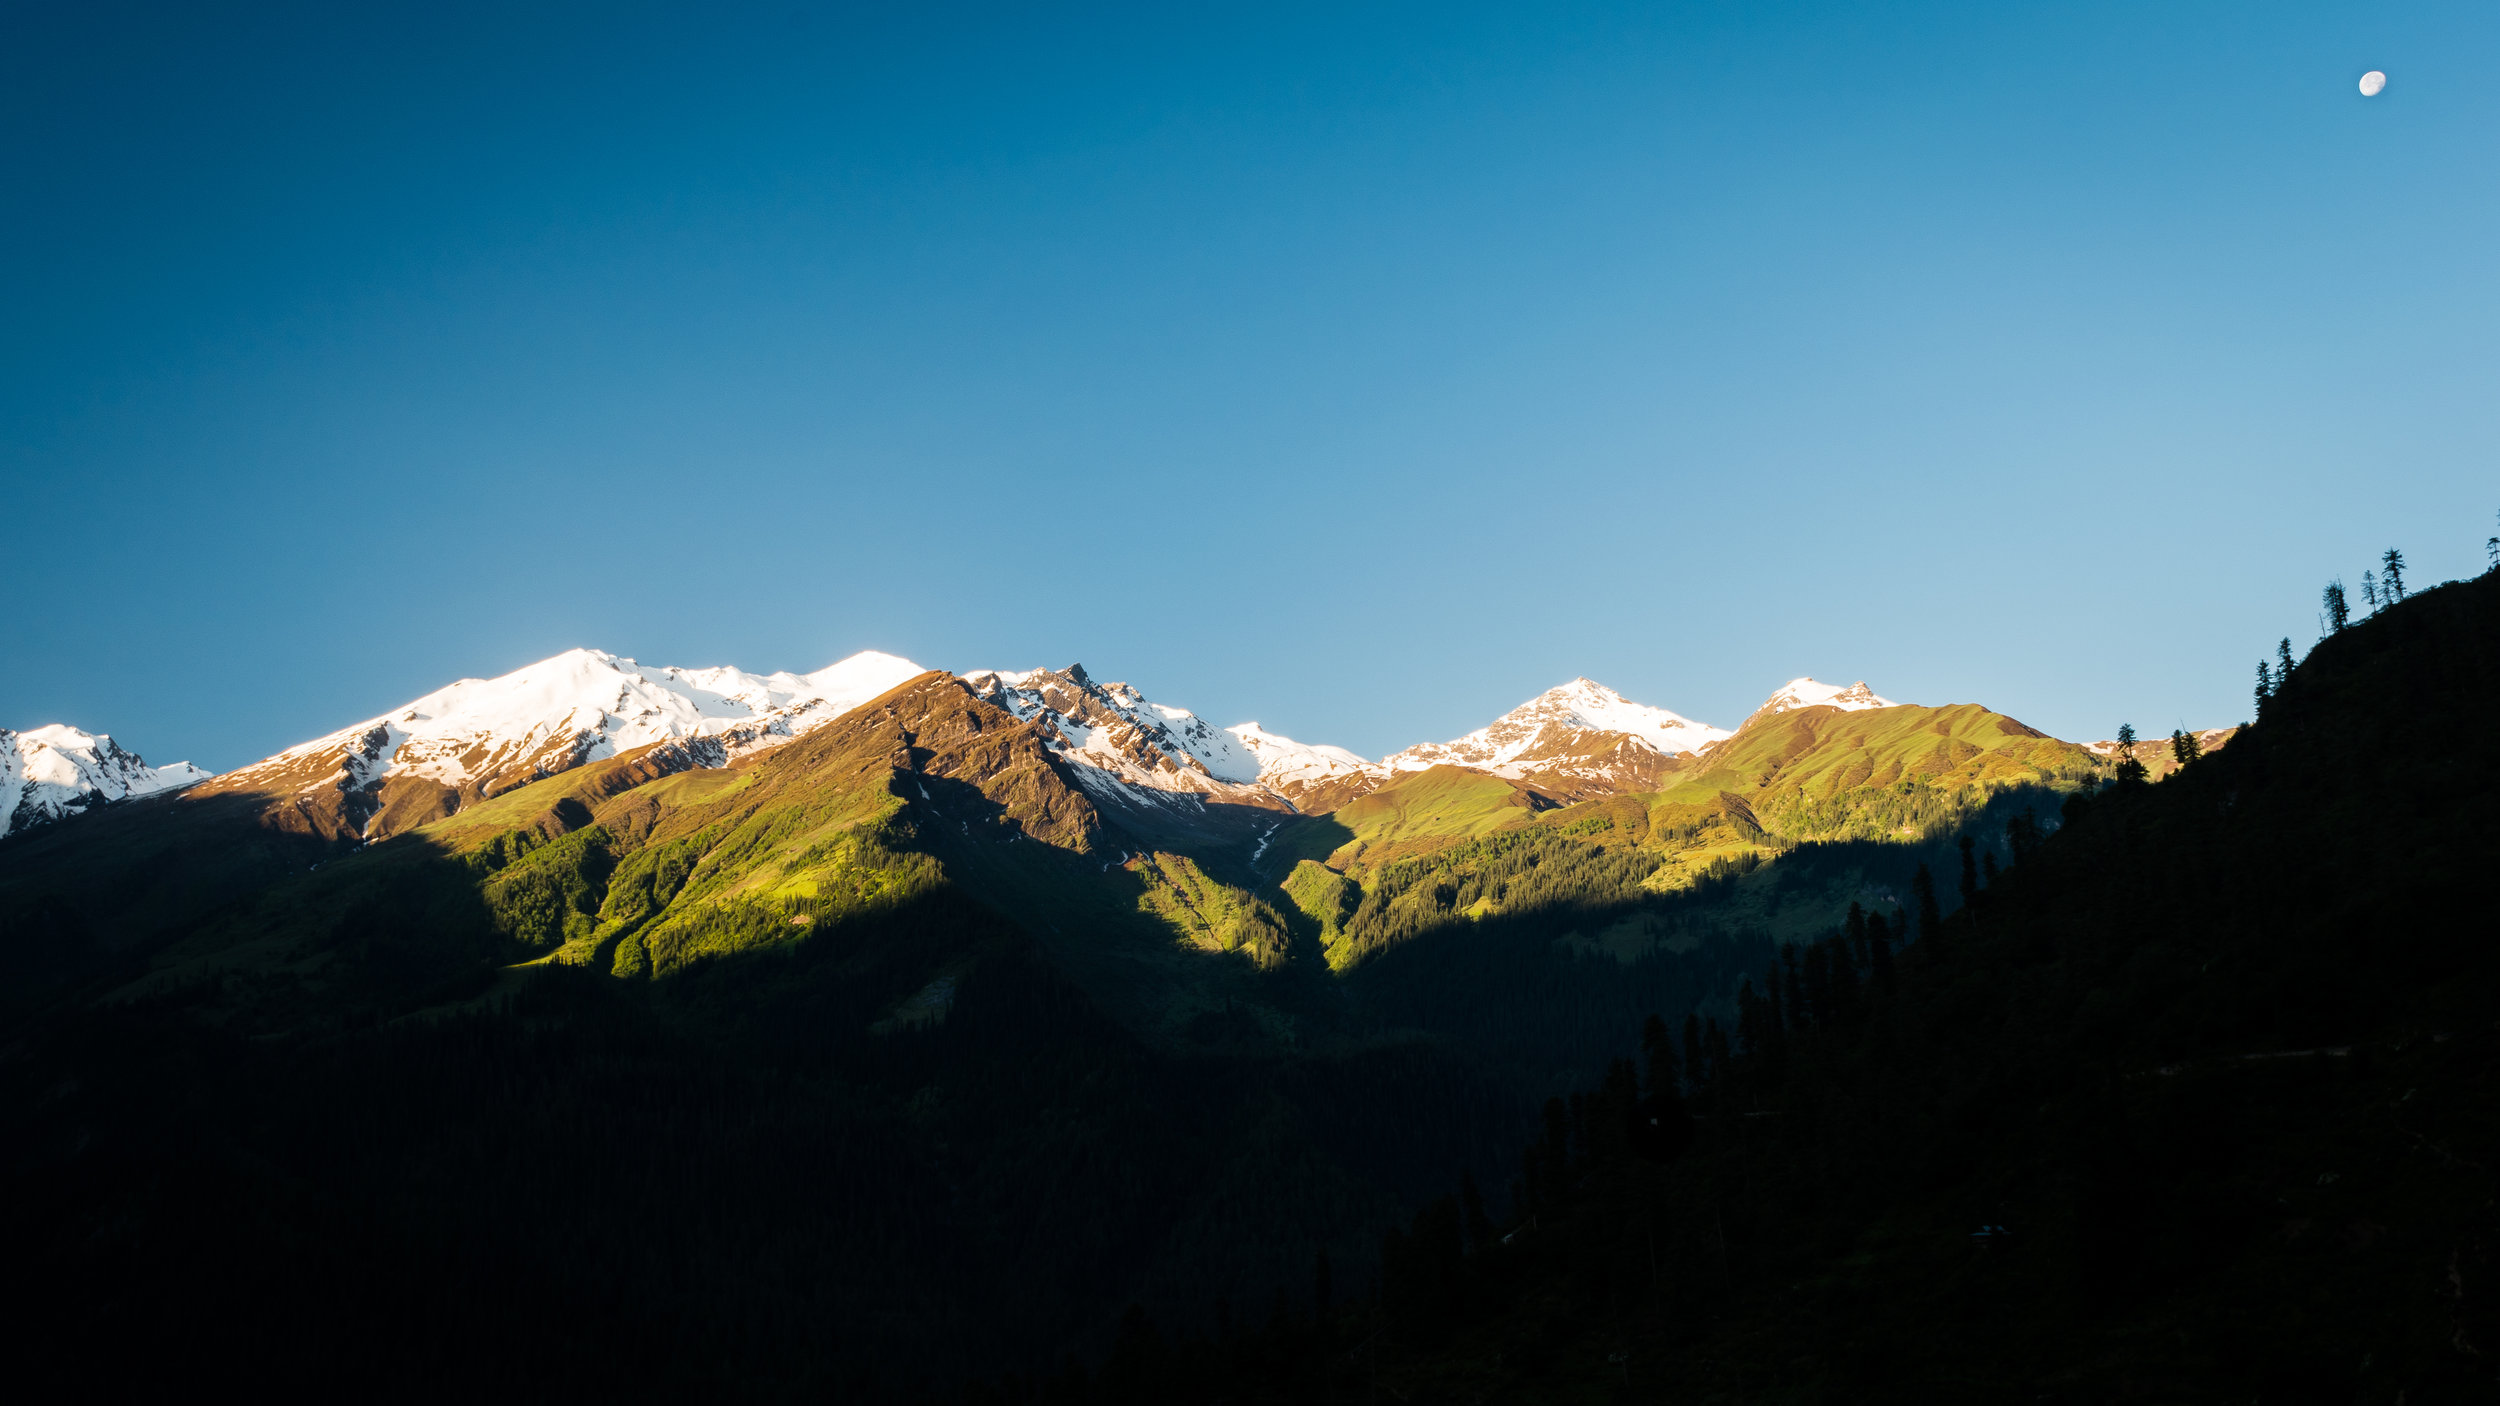 Craig Captures The Moon And Snowcapped Mountains At Sunrise In Tosh, India